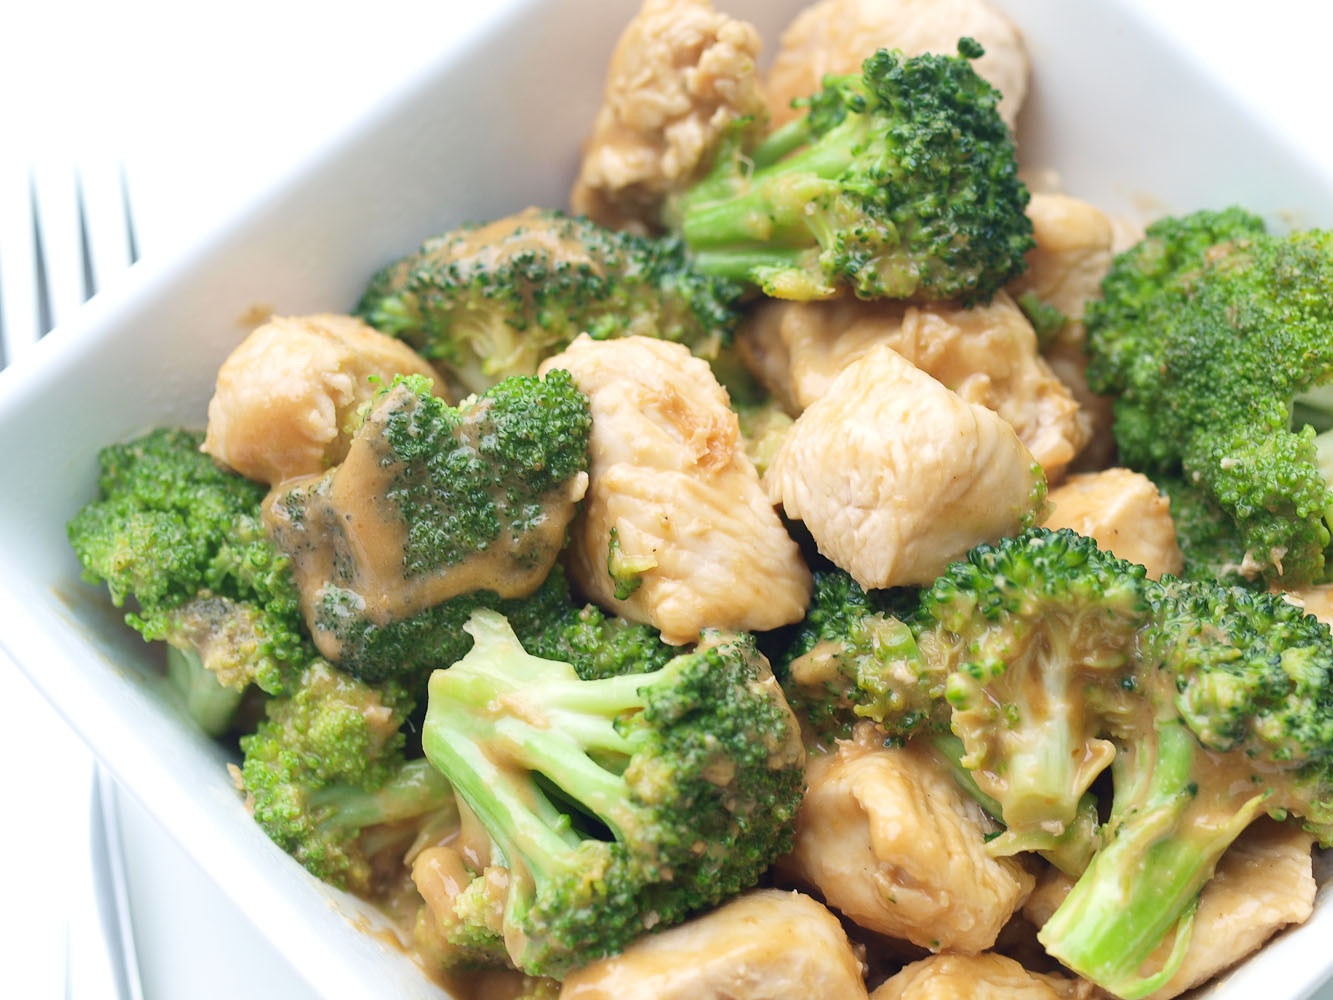 Healthy Chicken Sauces  Easy Broccoli and Chicken with Peanut Sauce Happy